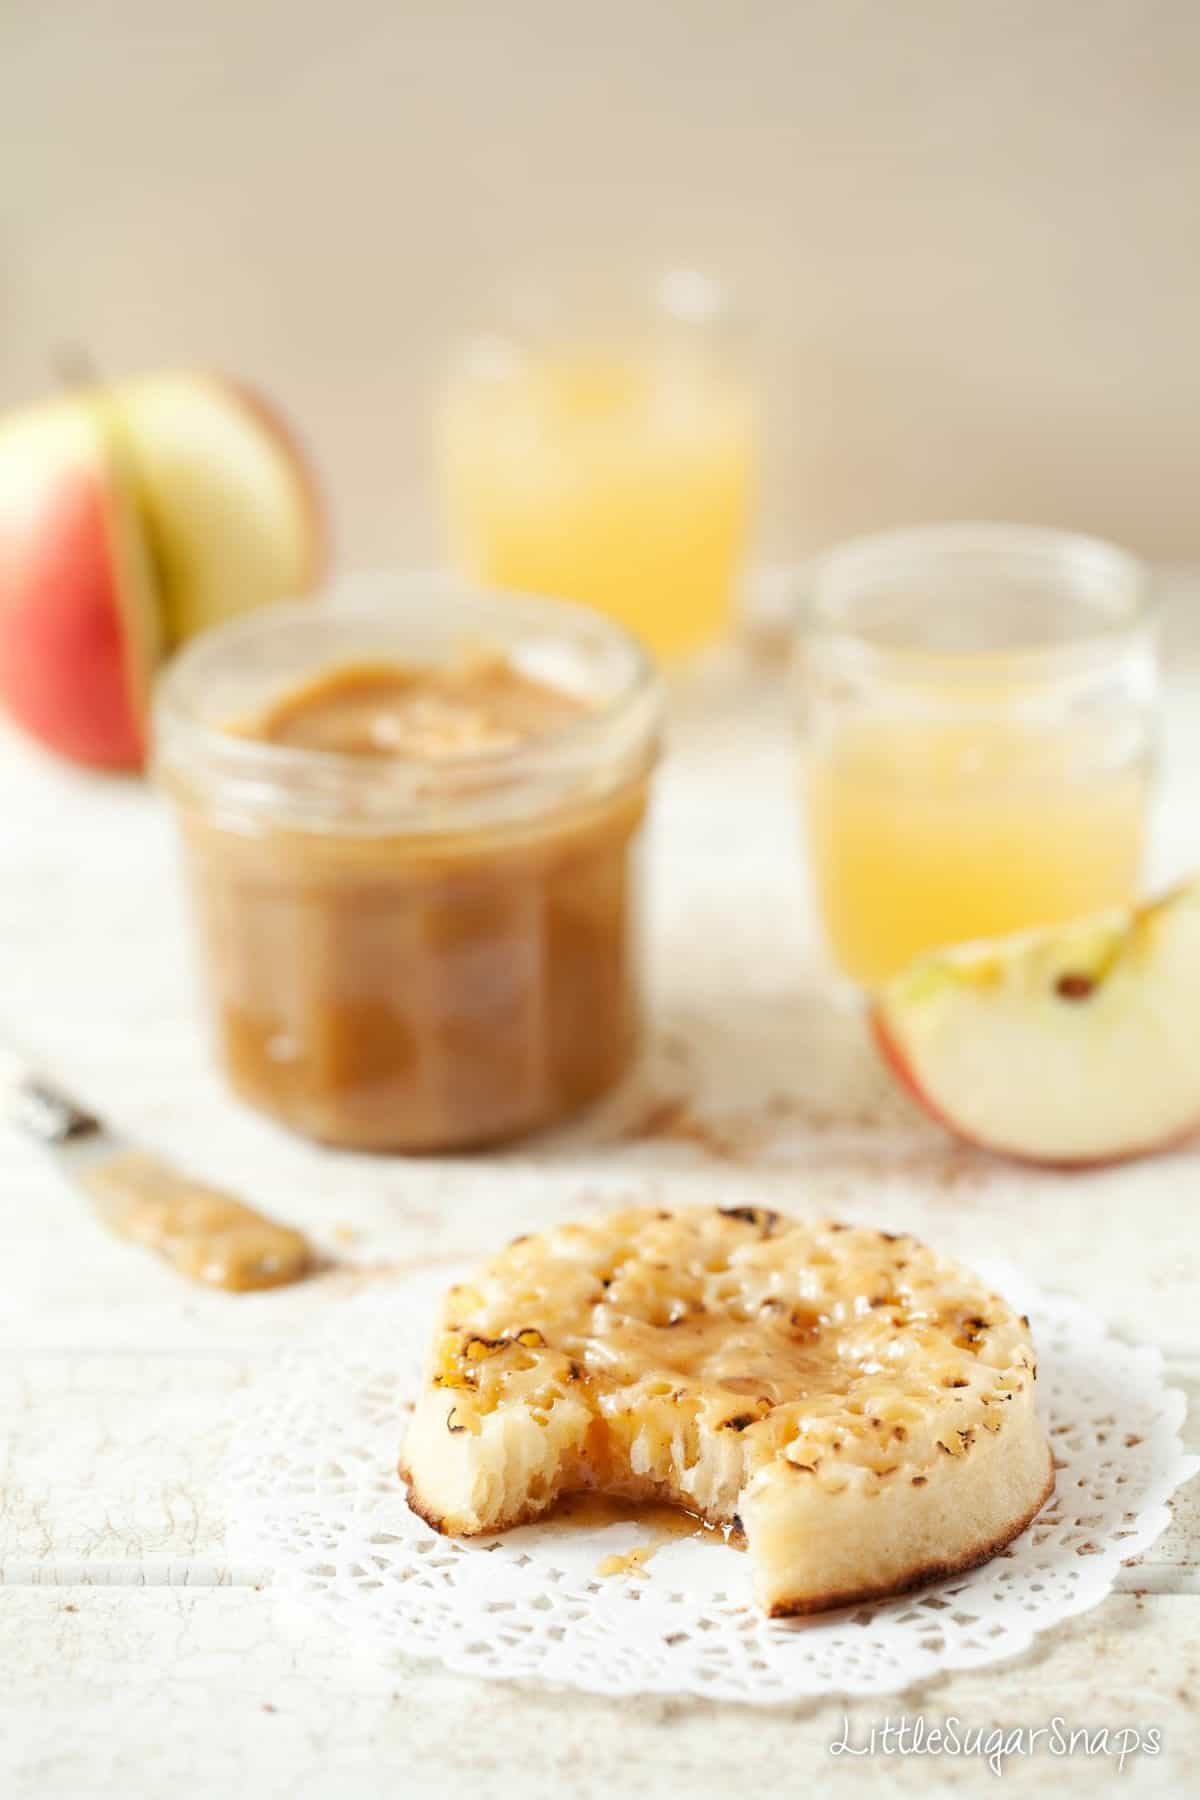 Spreadable Cinnamon Apple Caramel